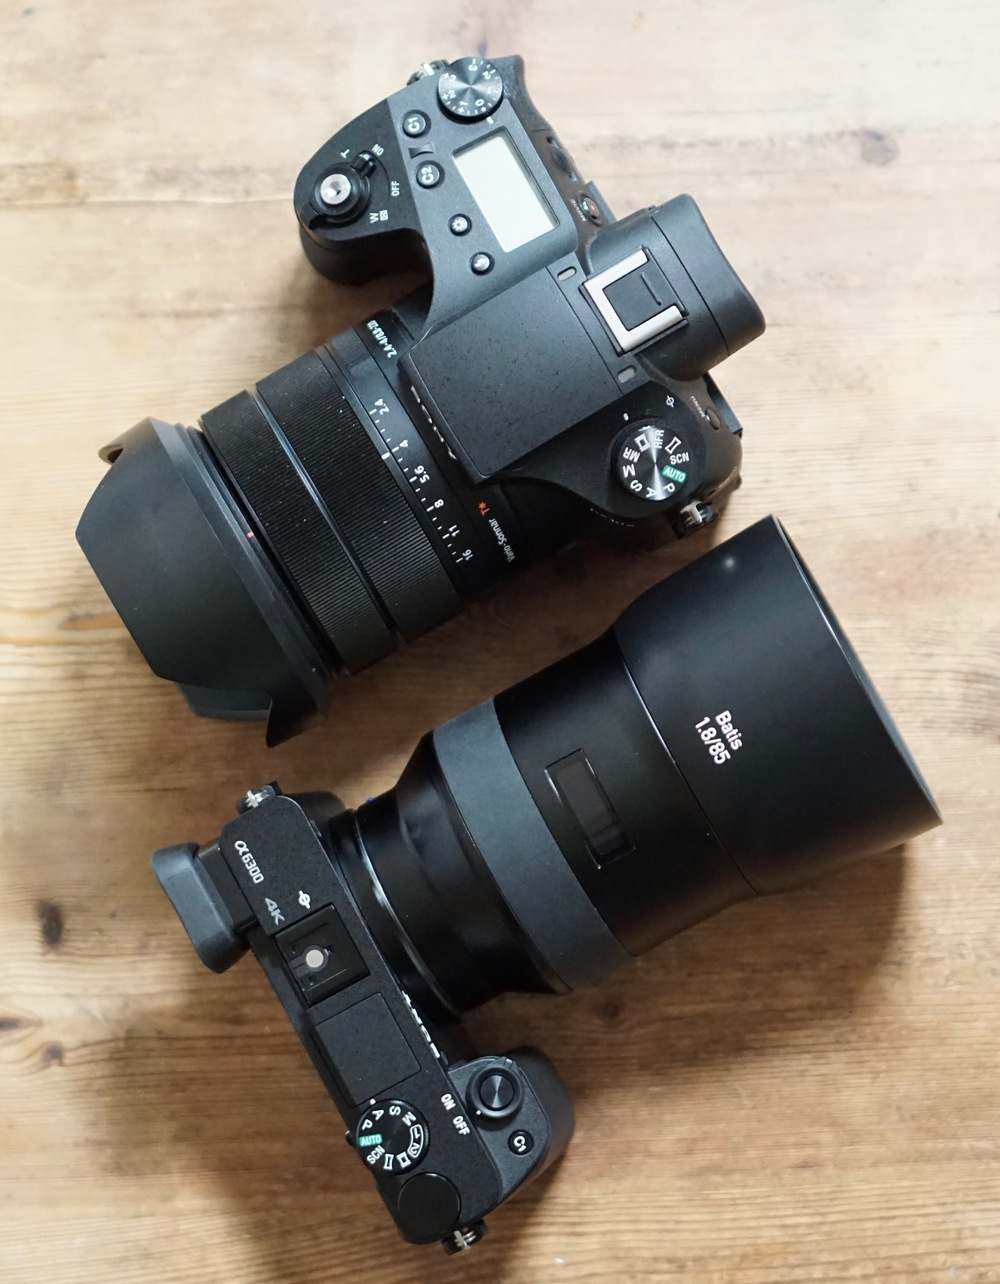 RX10 Mark III above, a6300 below. Note much thicker body and grip of RX10 Mark III. Then again, that's a single focal length 85mm lens on the a6300 (including lens hood), but a 24-600mm (35mm equivalent) on the RX1o Mark III!